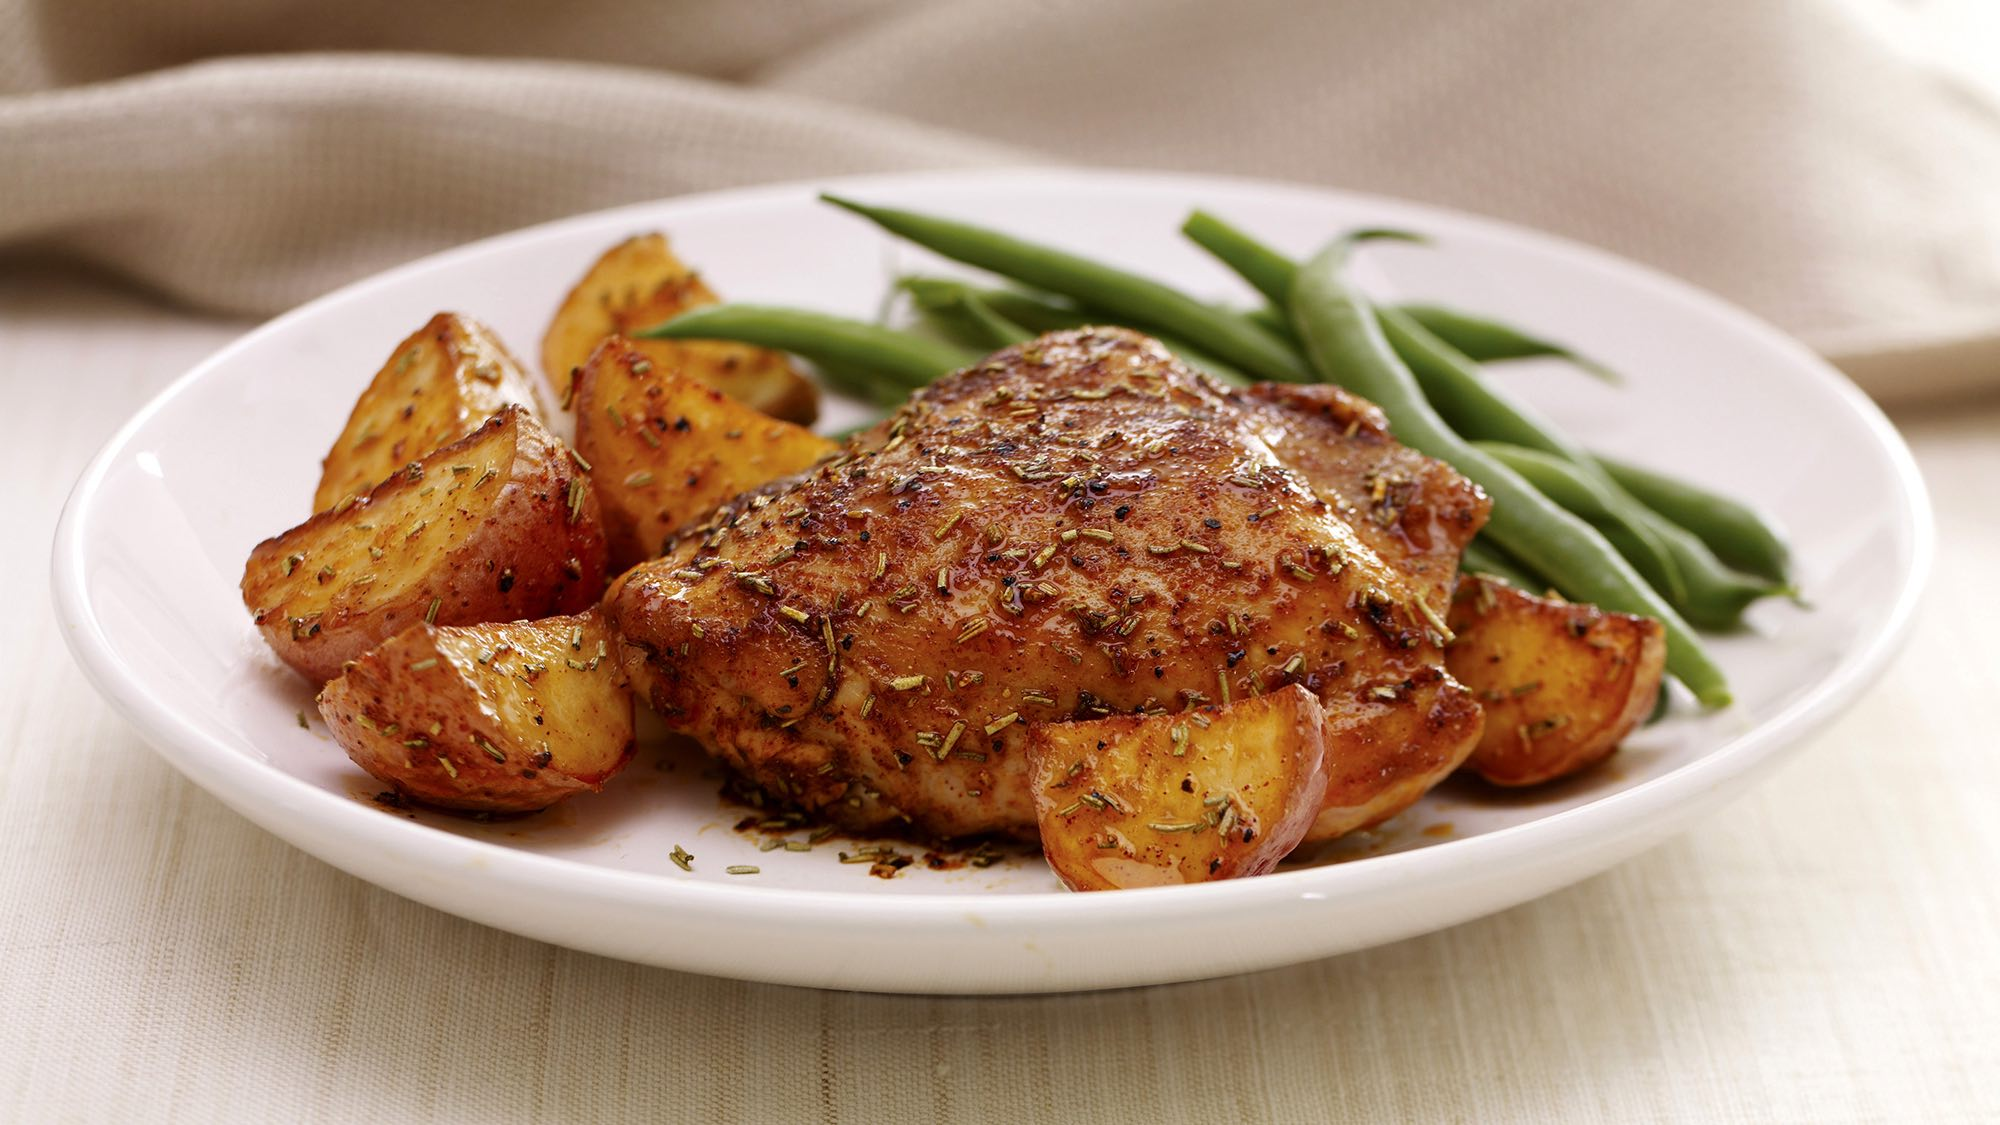 McCormick Rosemary Baked Chicken With Potatoes